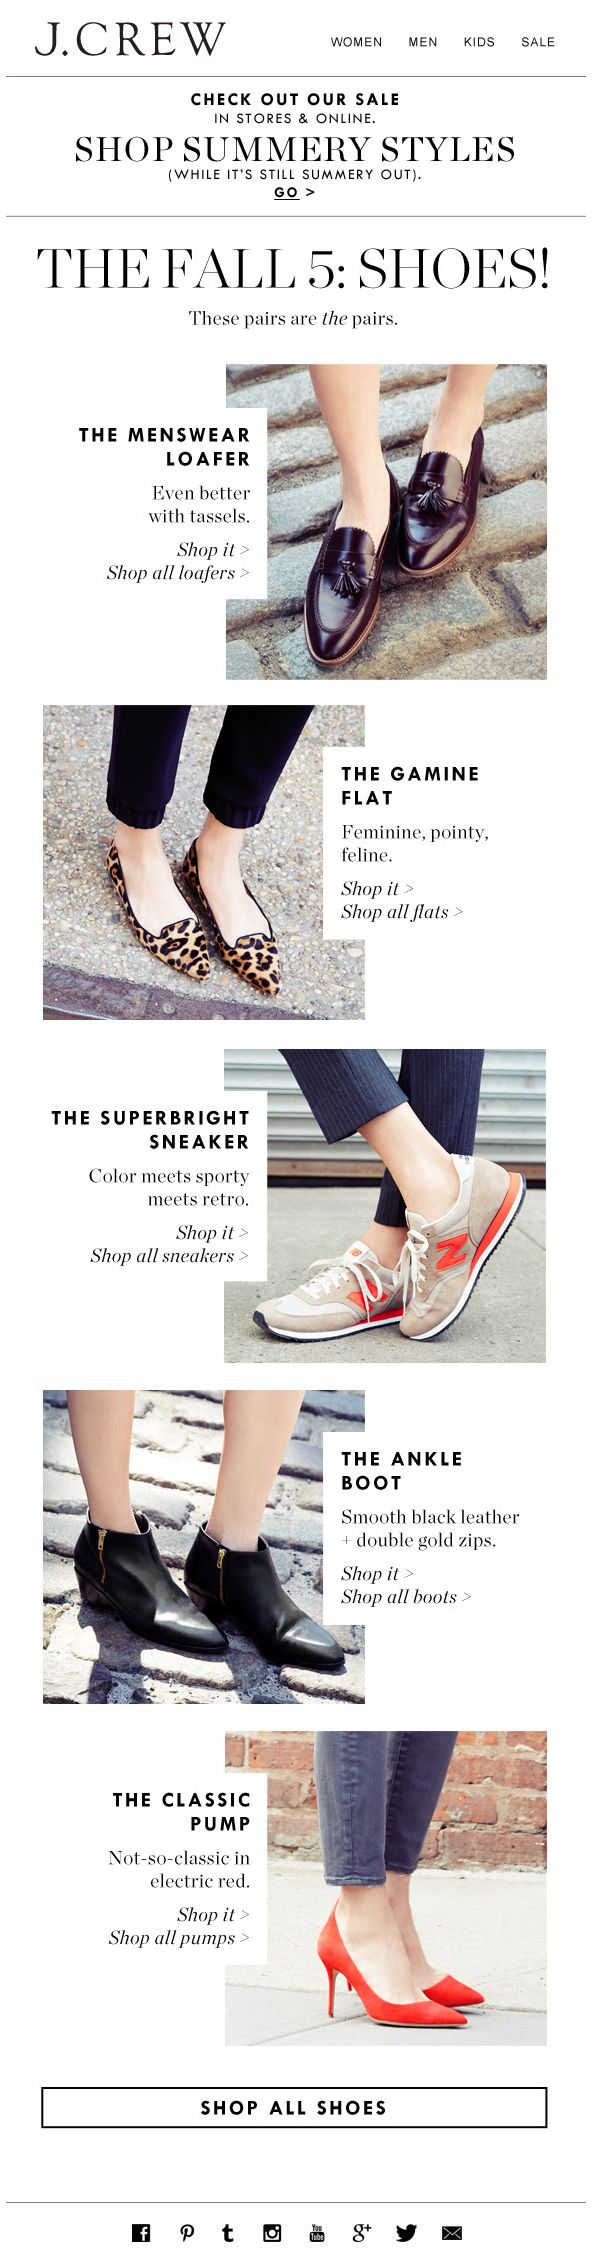 J.CREW : Top Products